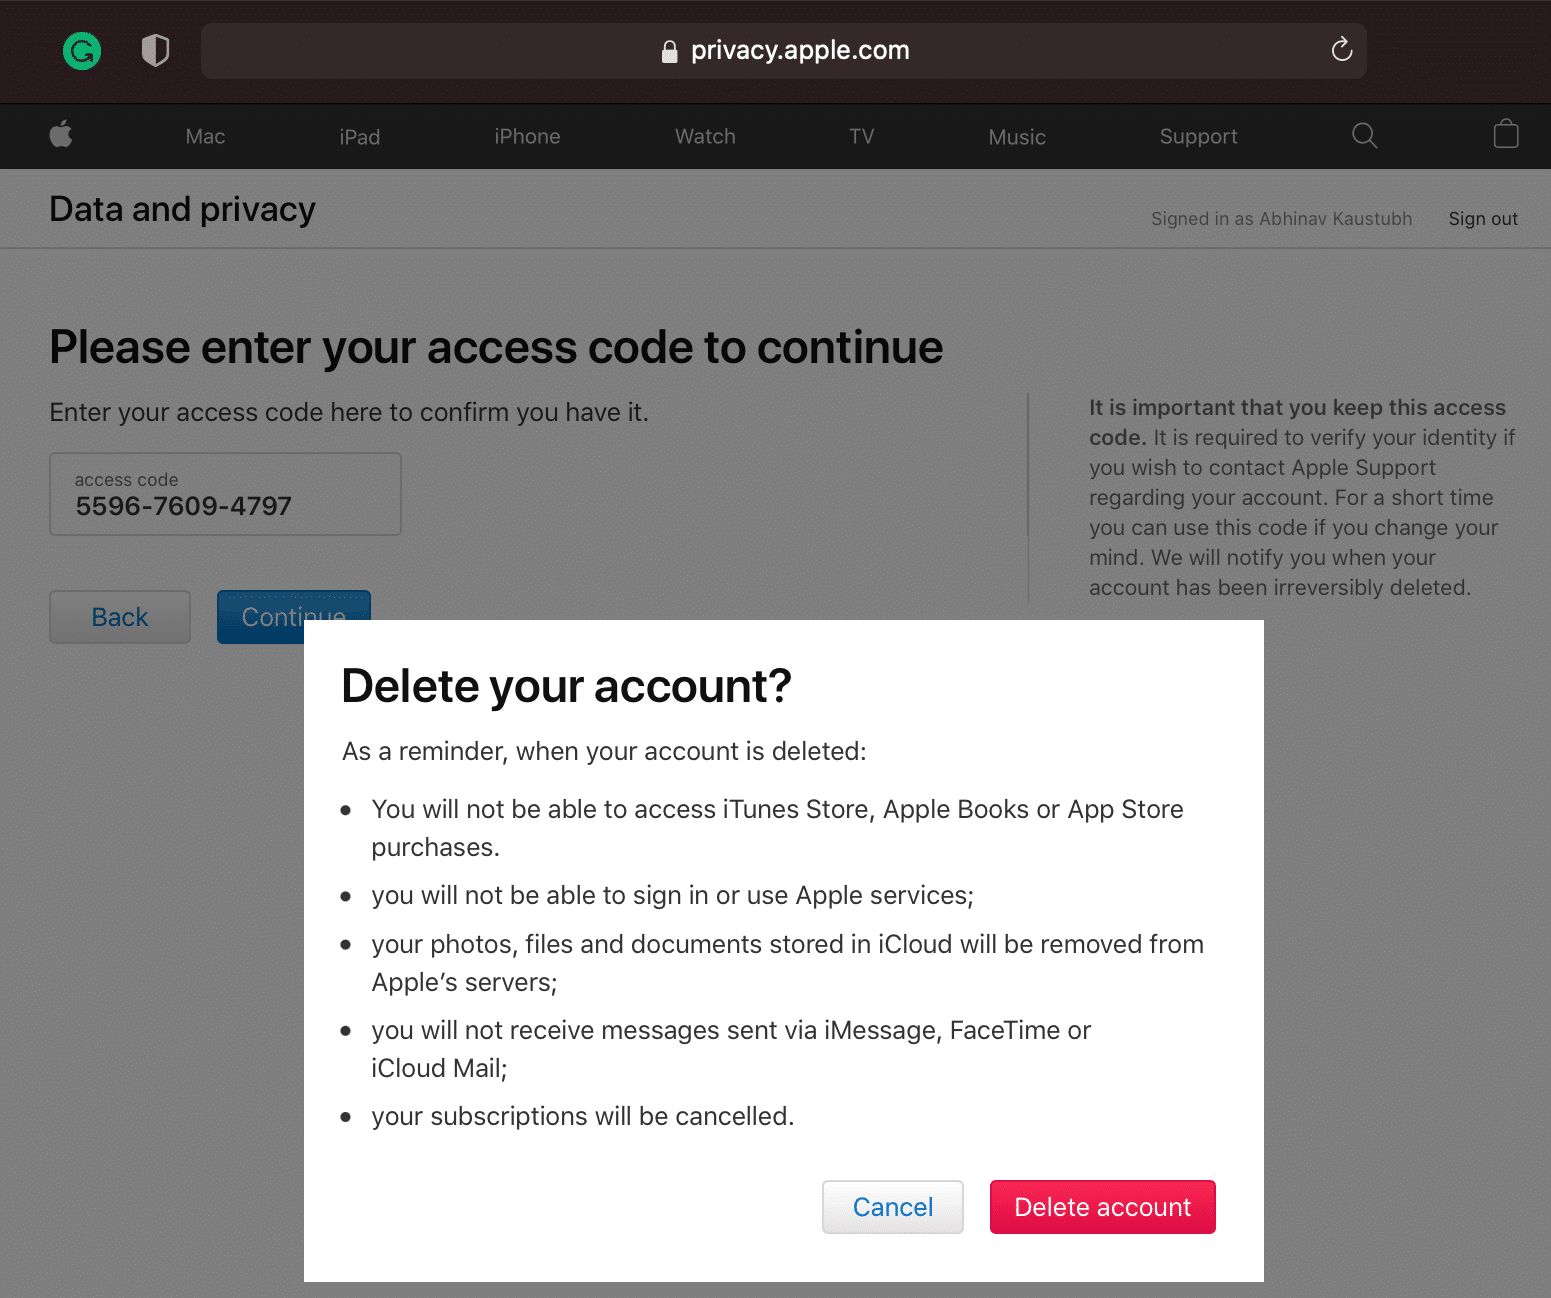 Click Delete account to delete your Apple ID account permanently.